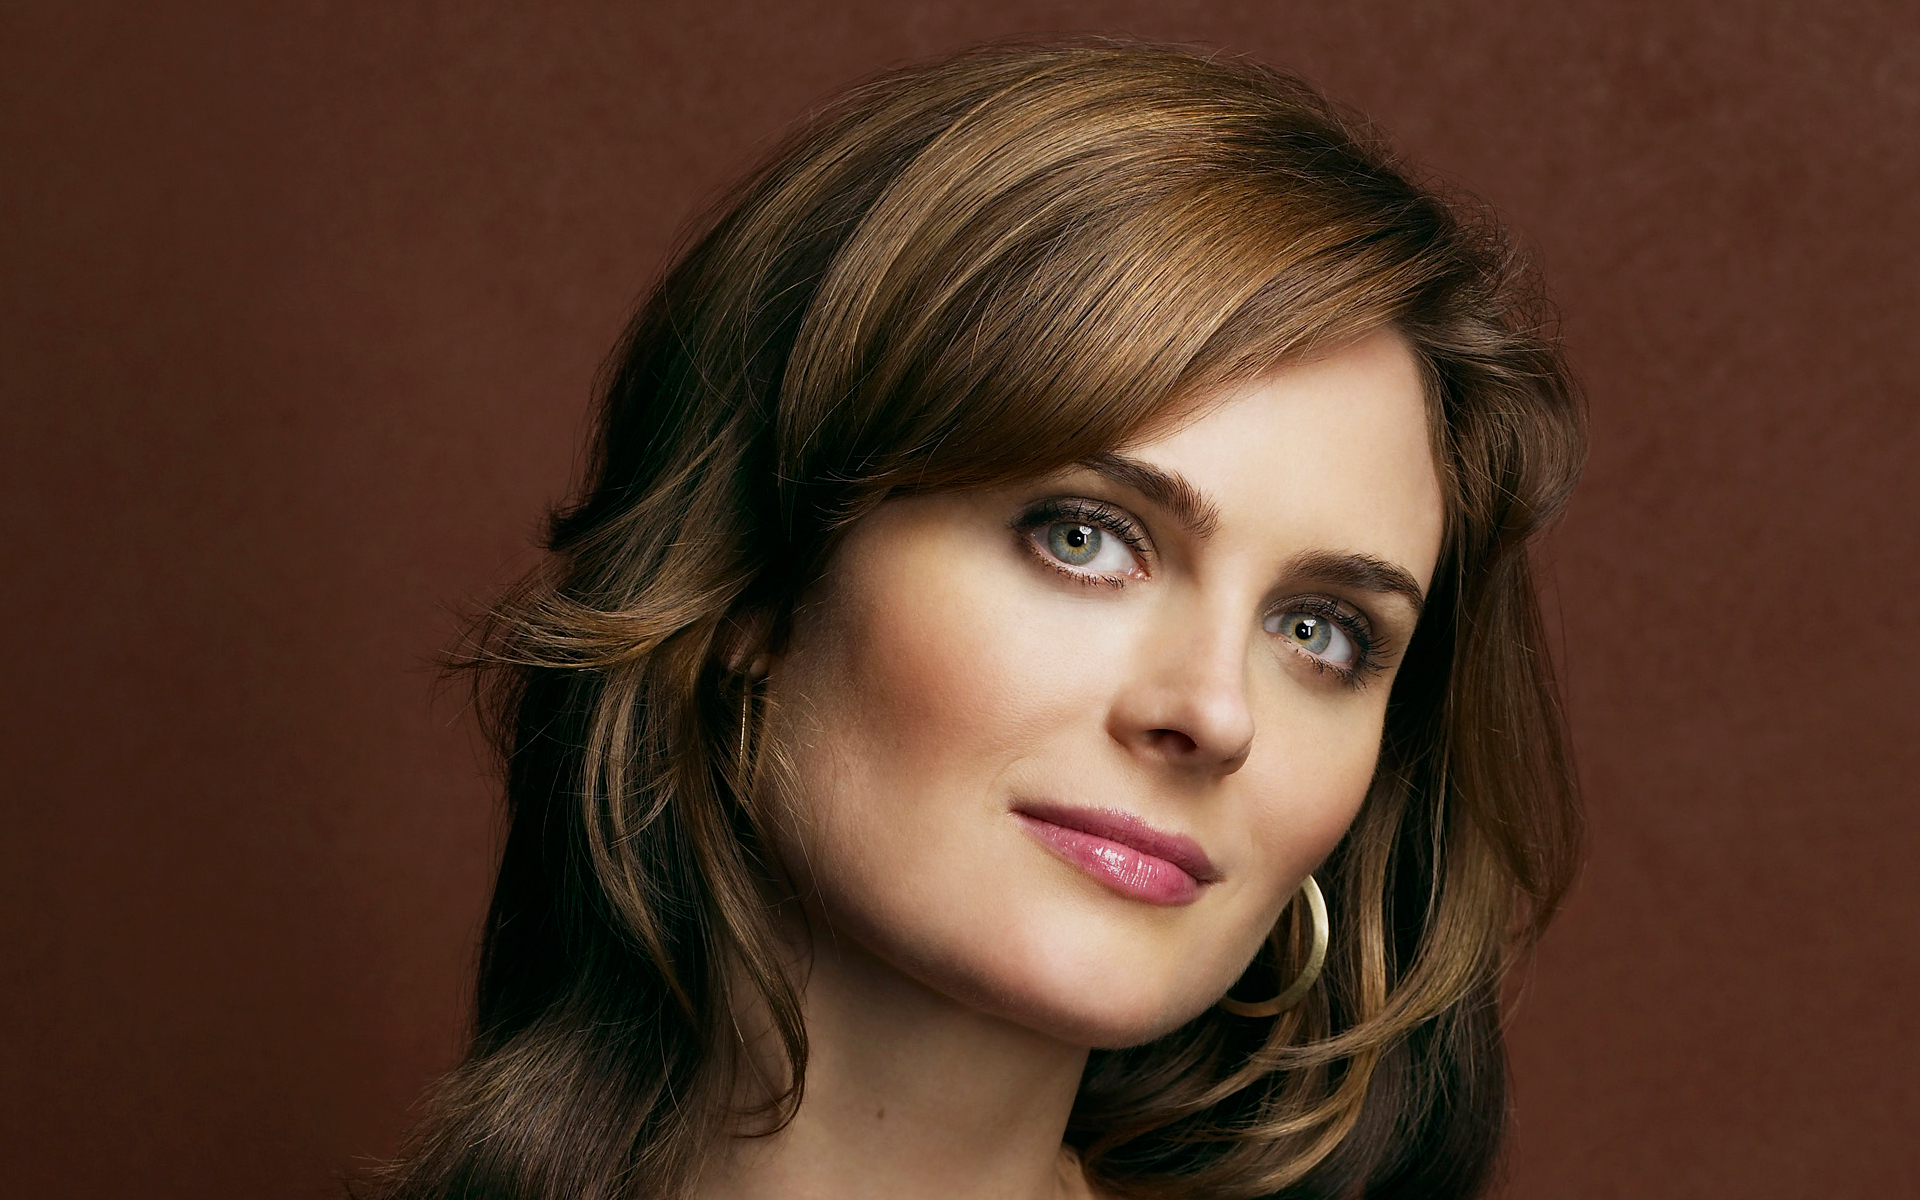 emily deschanel face wallpaper 61119